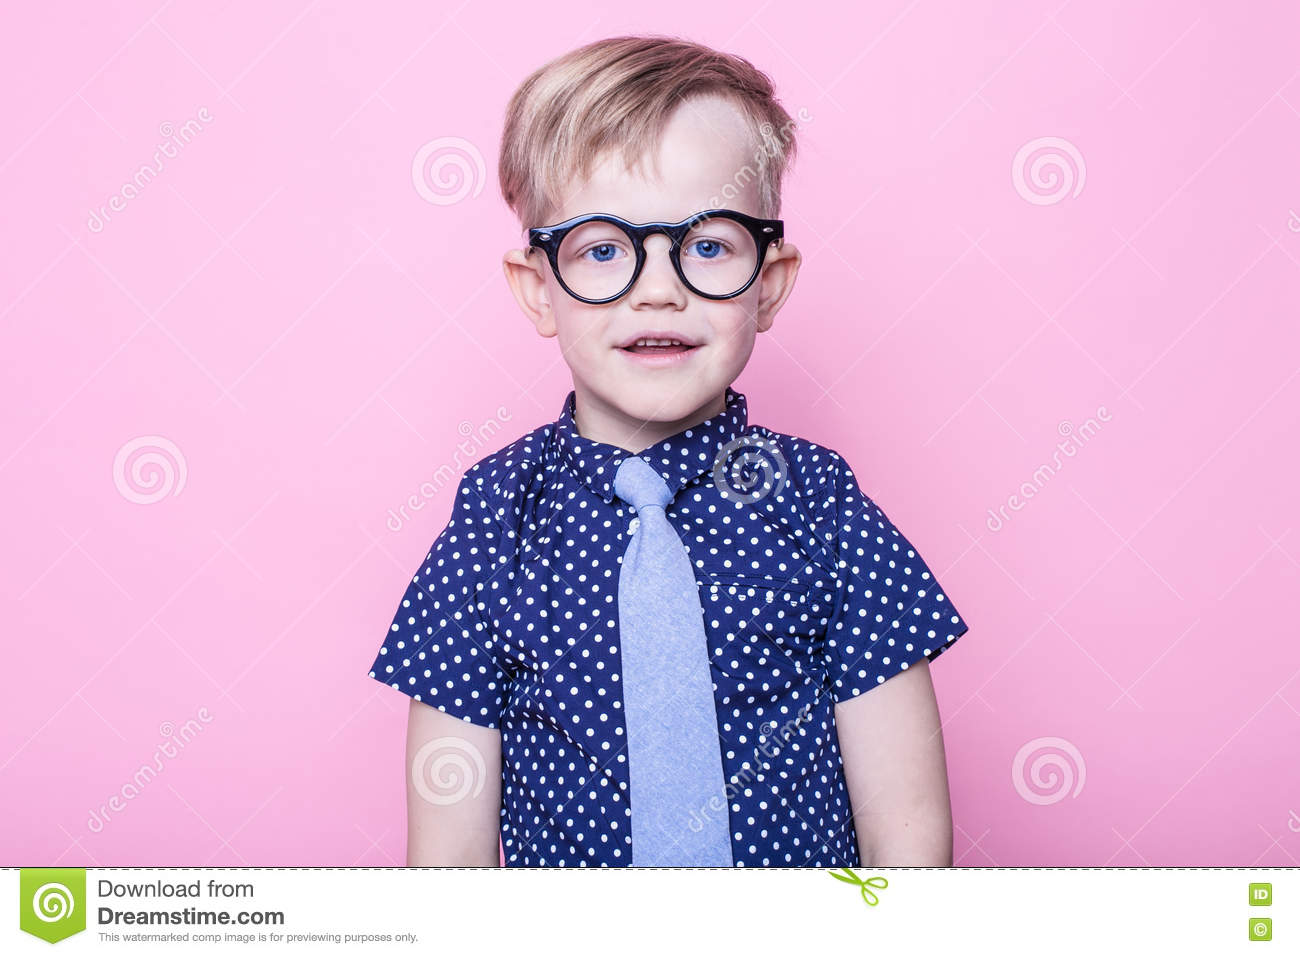 d6033780a901 Portrait of a little smiling boy in a funny glasses and tie. School.  Preschool. Fashion. Studio portrait over pink background